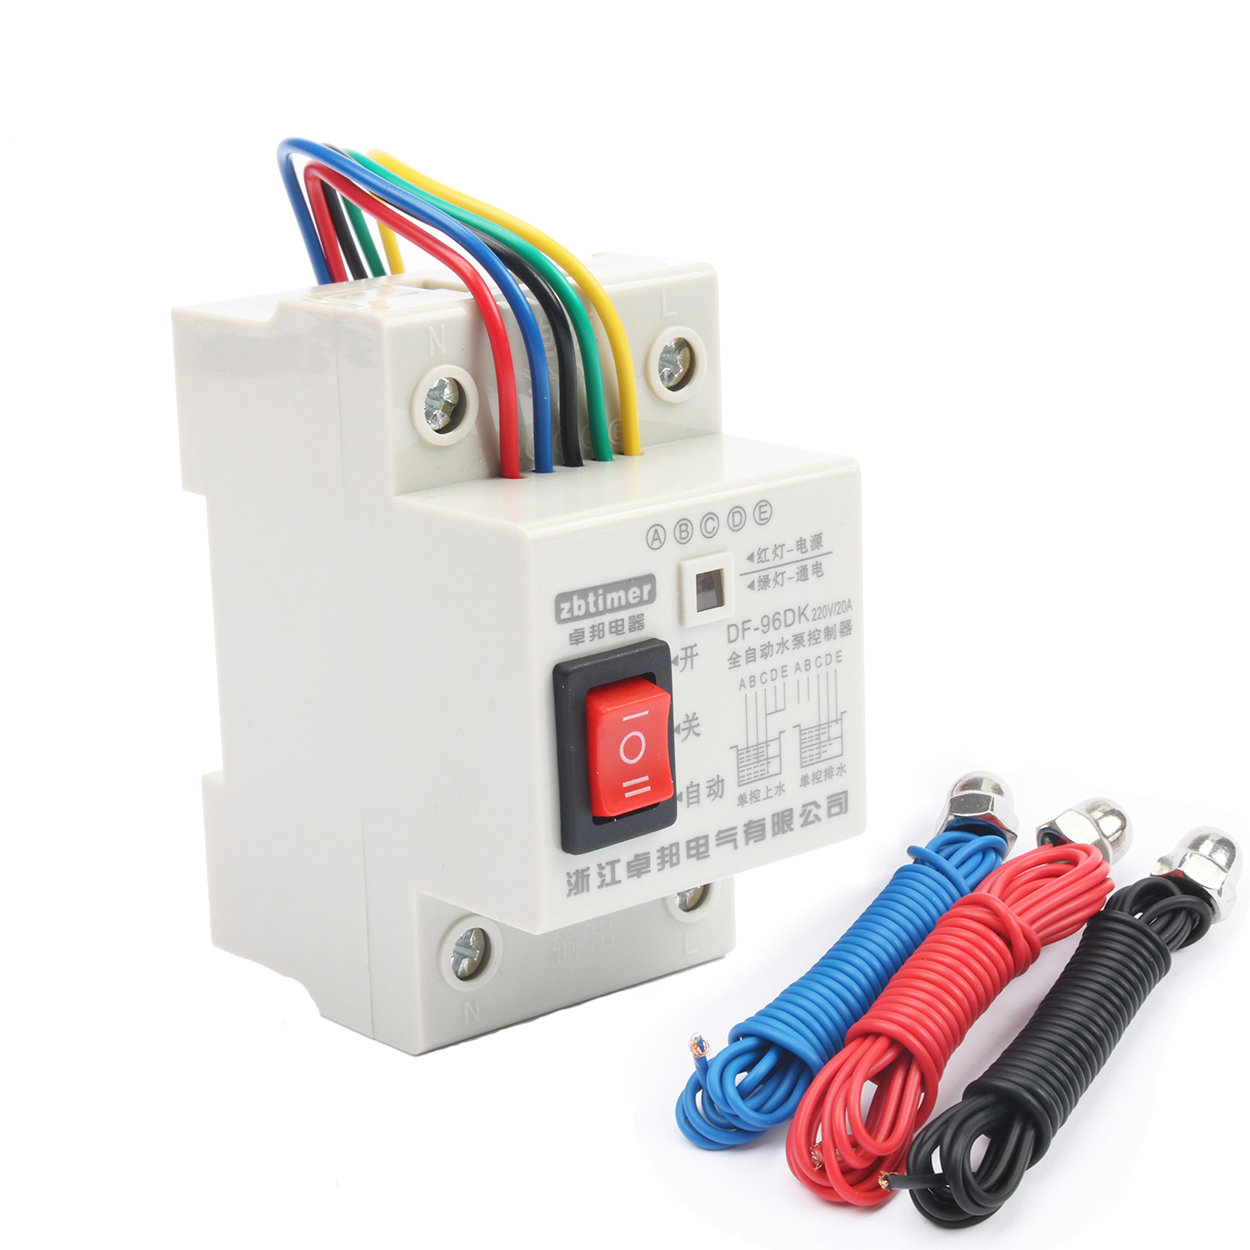 10A 220V Water Pump Controller DF-96DK , Automatic Water Level Controller Switch , Water Tank Liquid Level Detection Sensor